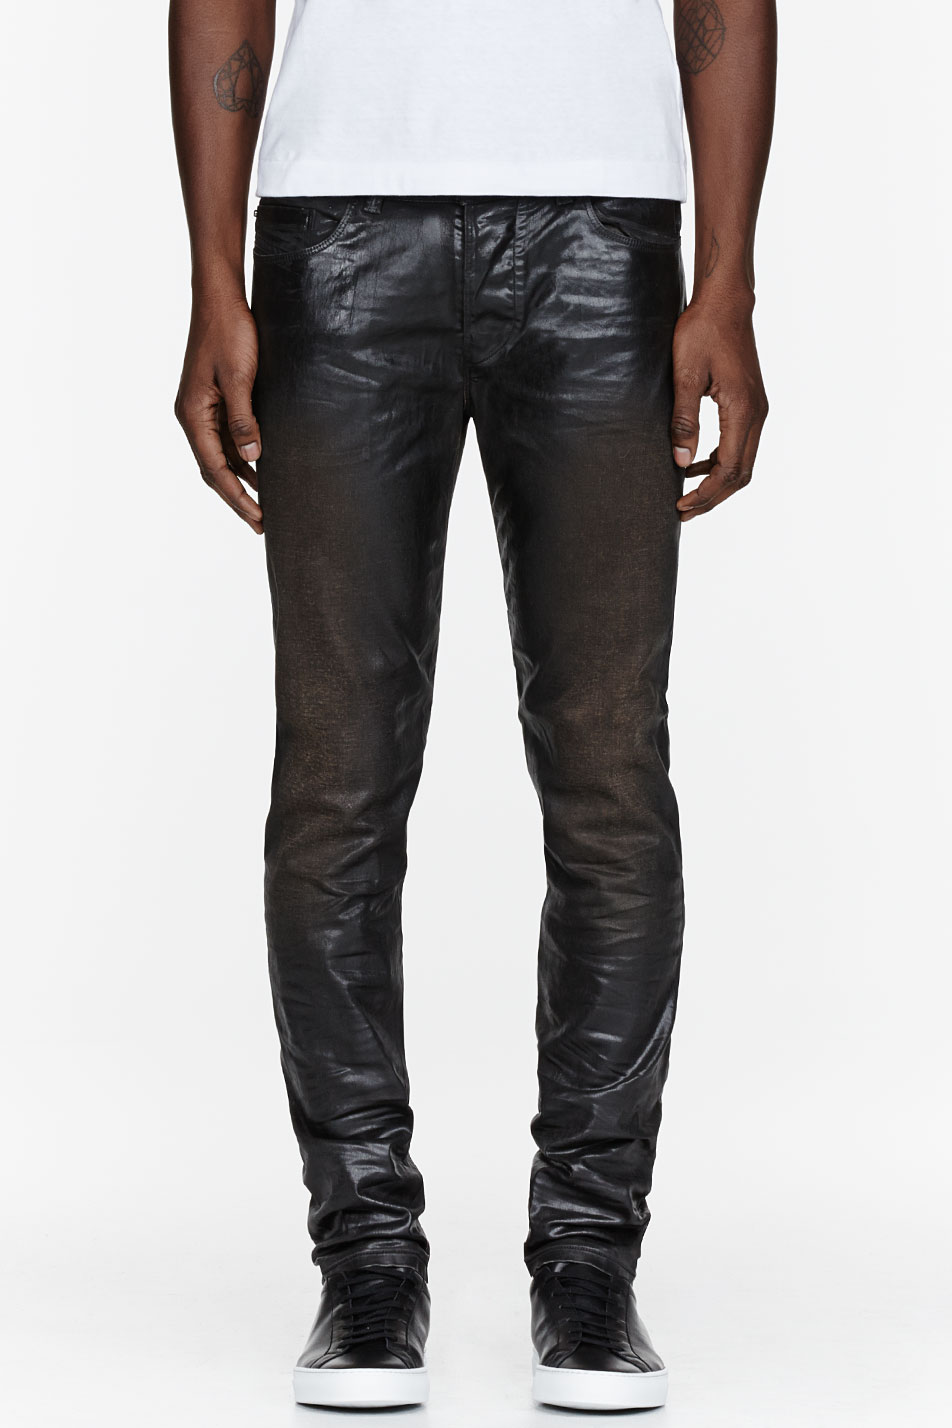 Find and save ideas about Black jeans men on Pinterest. | See more ideas about Black and brown mens fashion, Mens casual leather boots and Men's casual fashion boots. Men's fashion. Black jeans men Men's Black Pea Coat, Charcoal Zip Sweater, Charcoal Long Sleeve Shirt, Black Jeans.